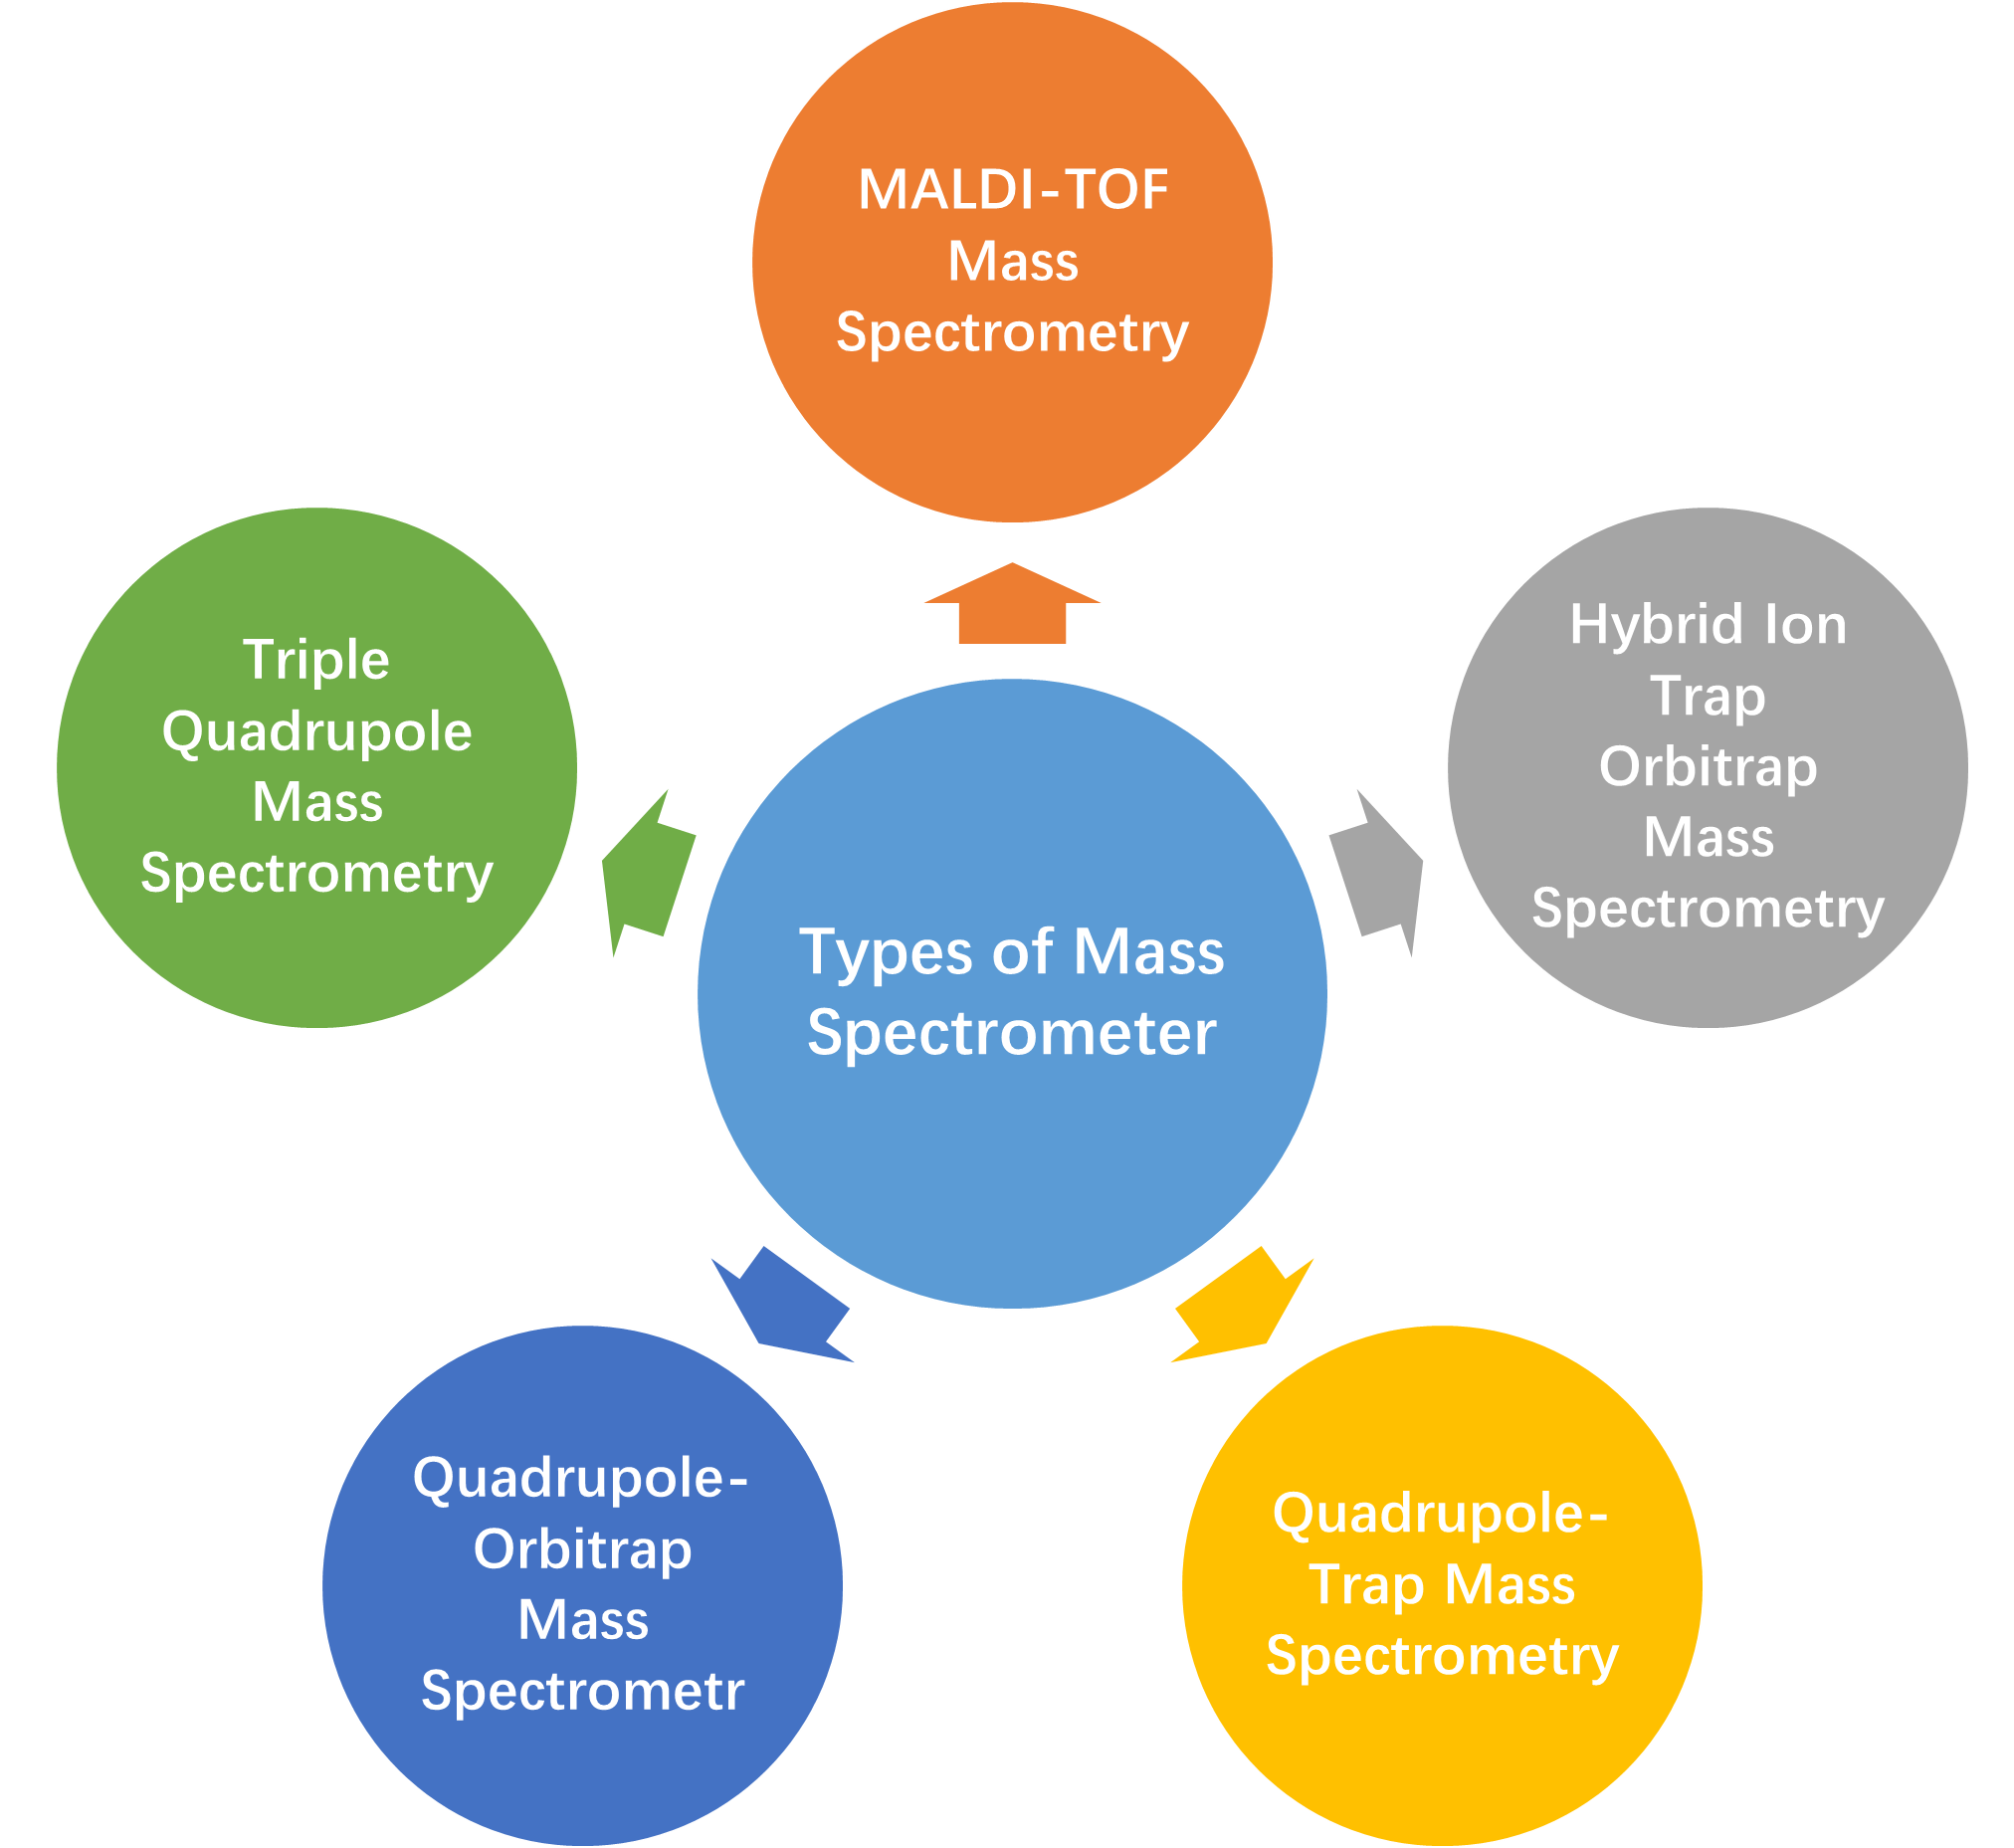 Types of Mass Spectrometer